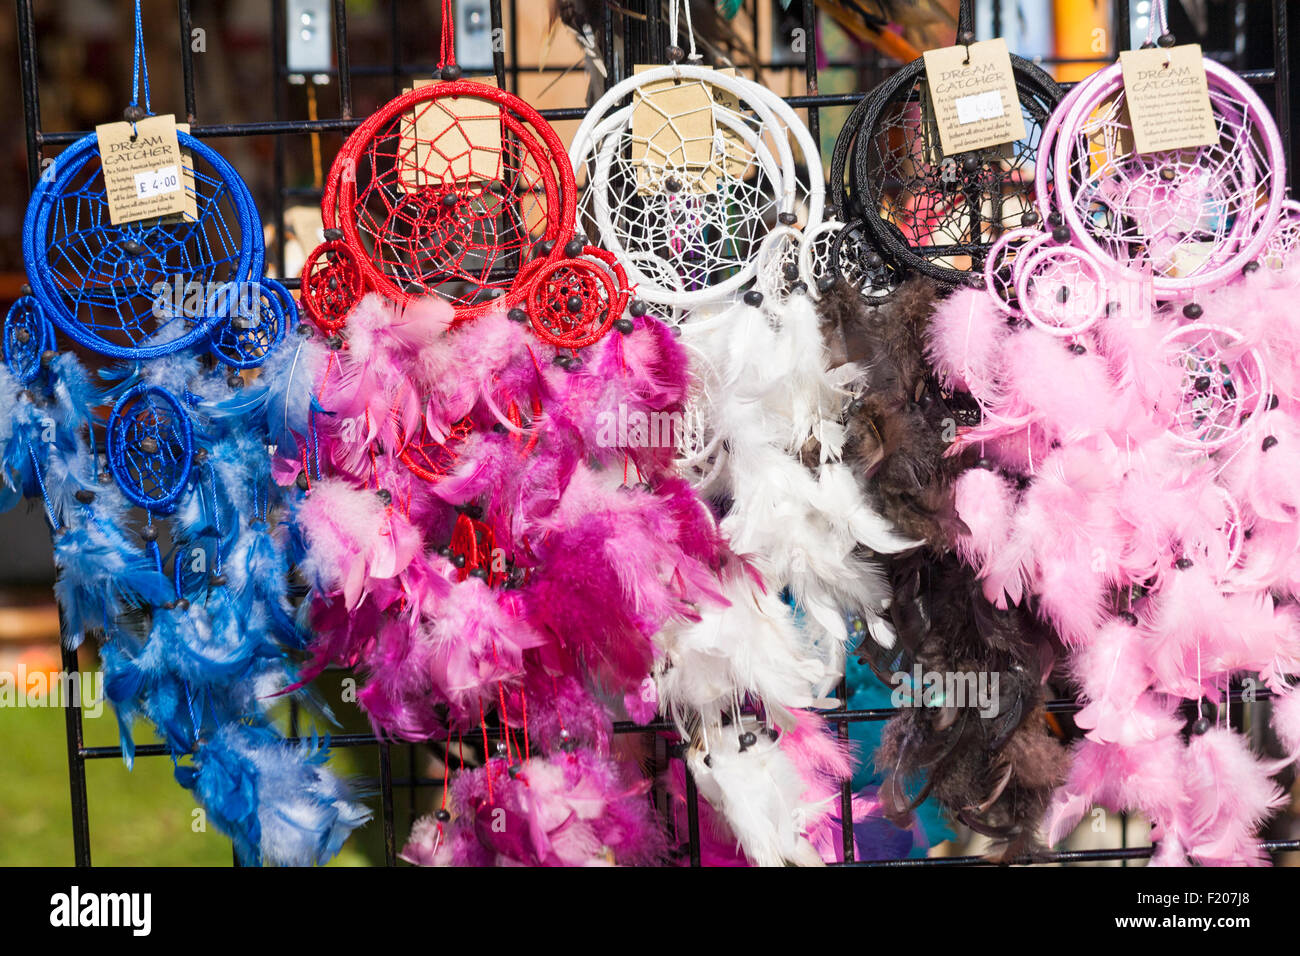 Dream Catchers For Sale Uk Dream catchers for sale on stall at Poole Thai Festival Dorset 9